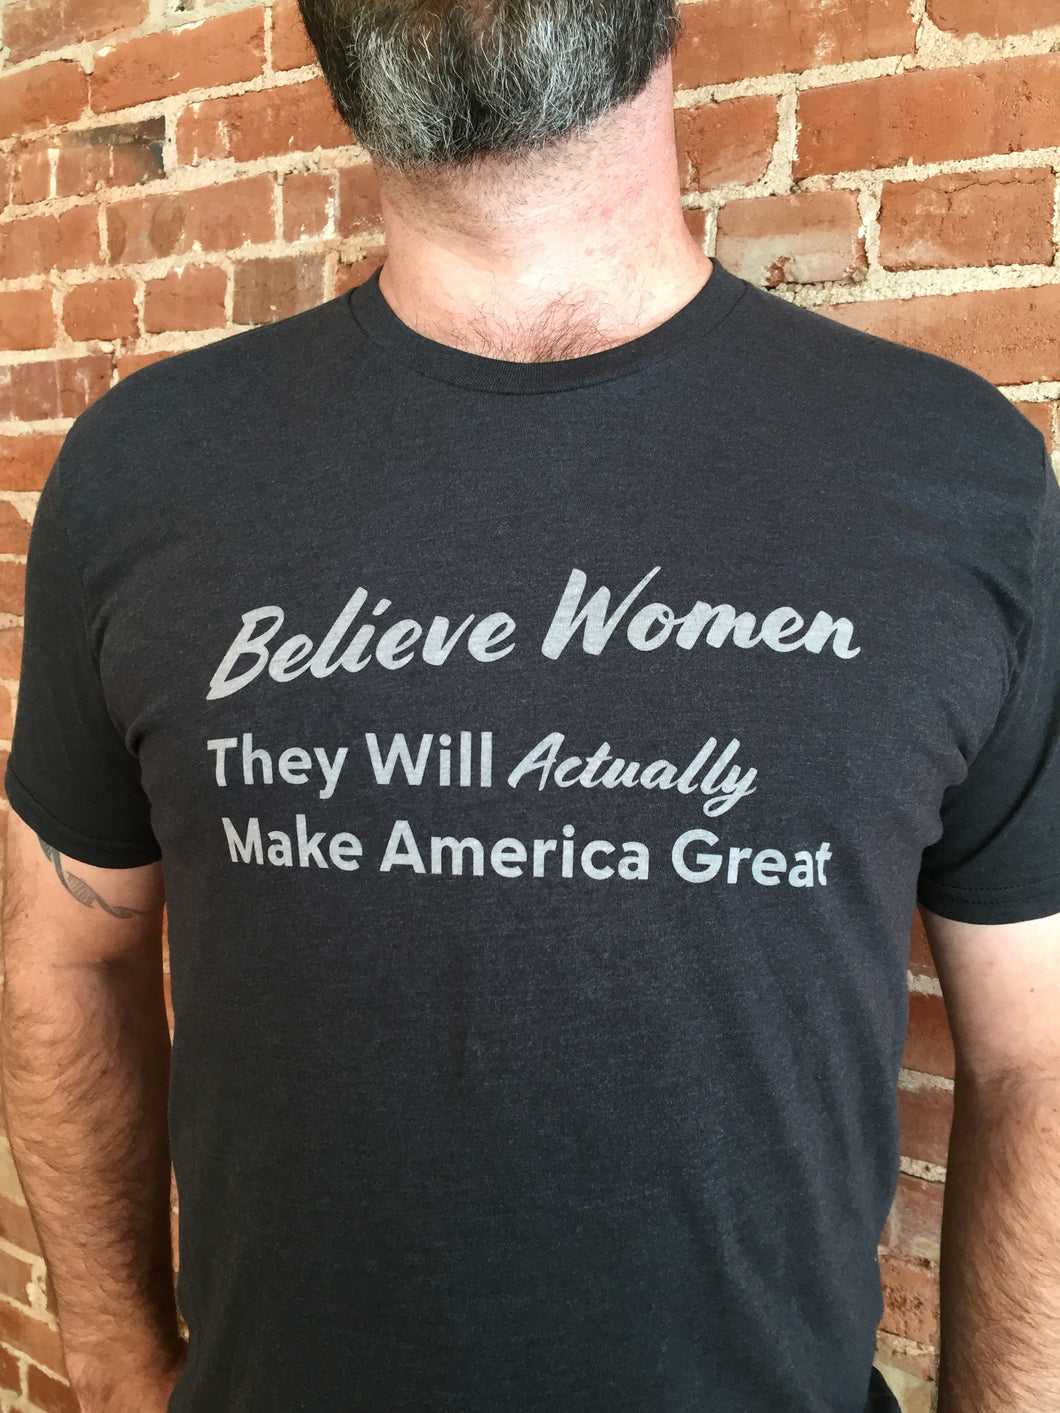 Buy a Men's Shirt for a Politician